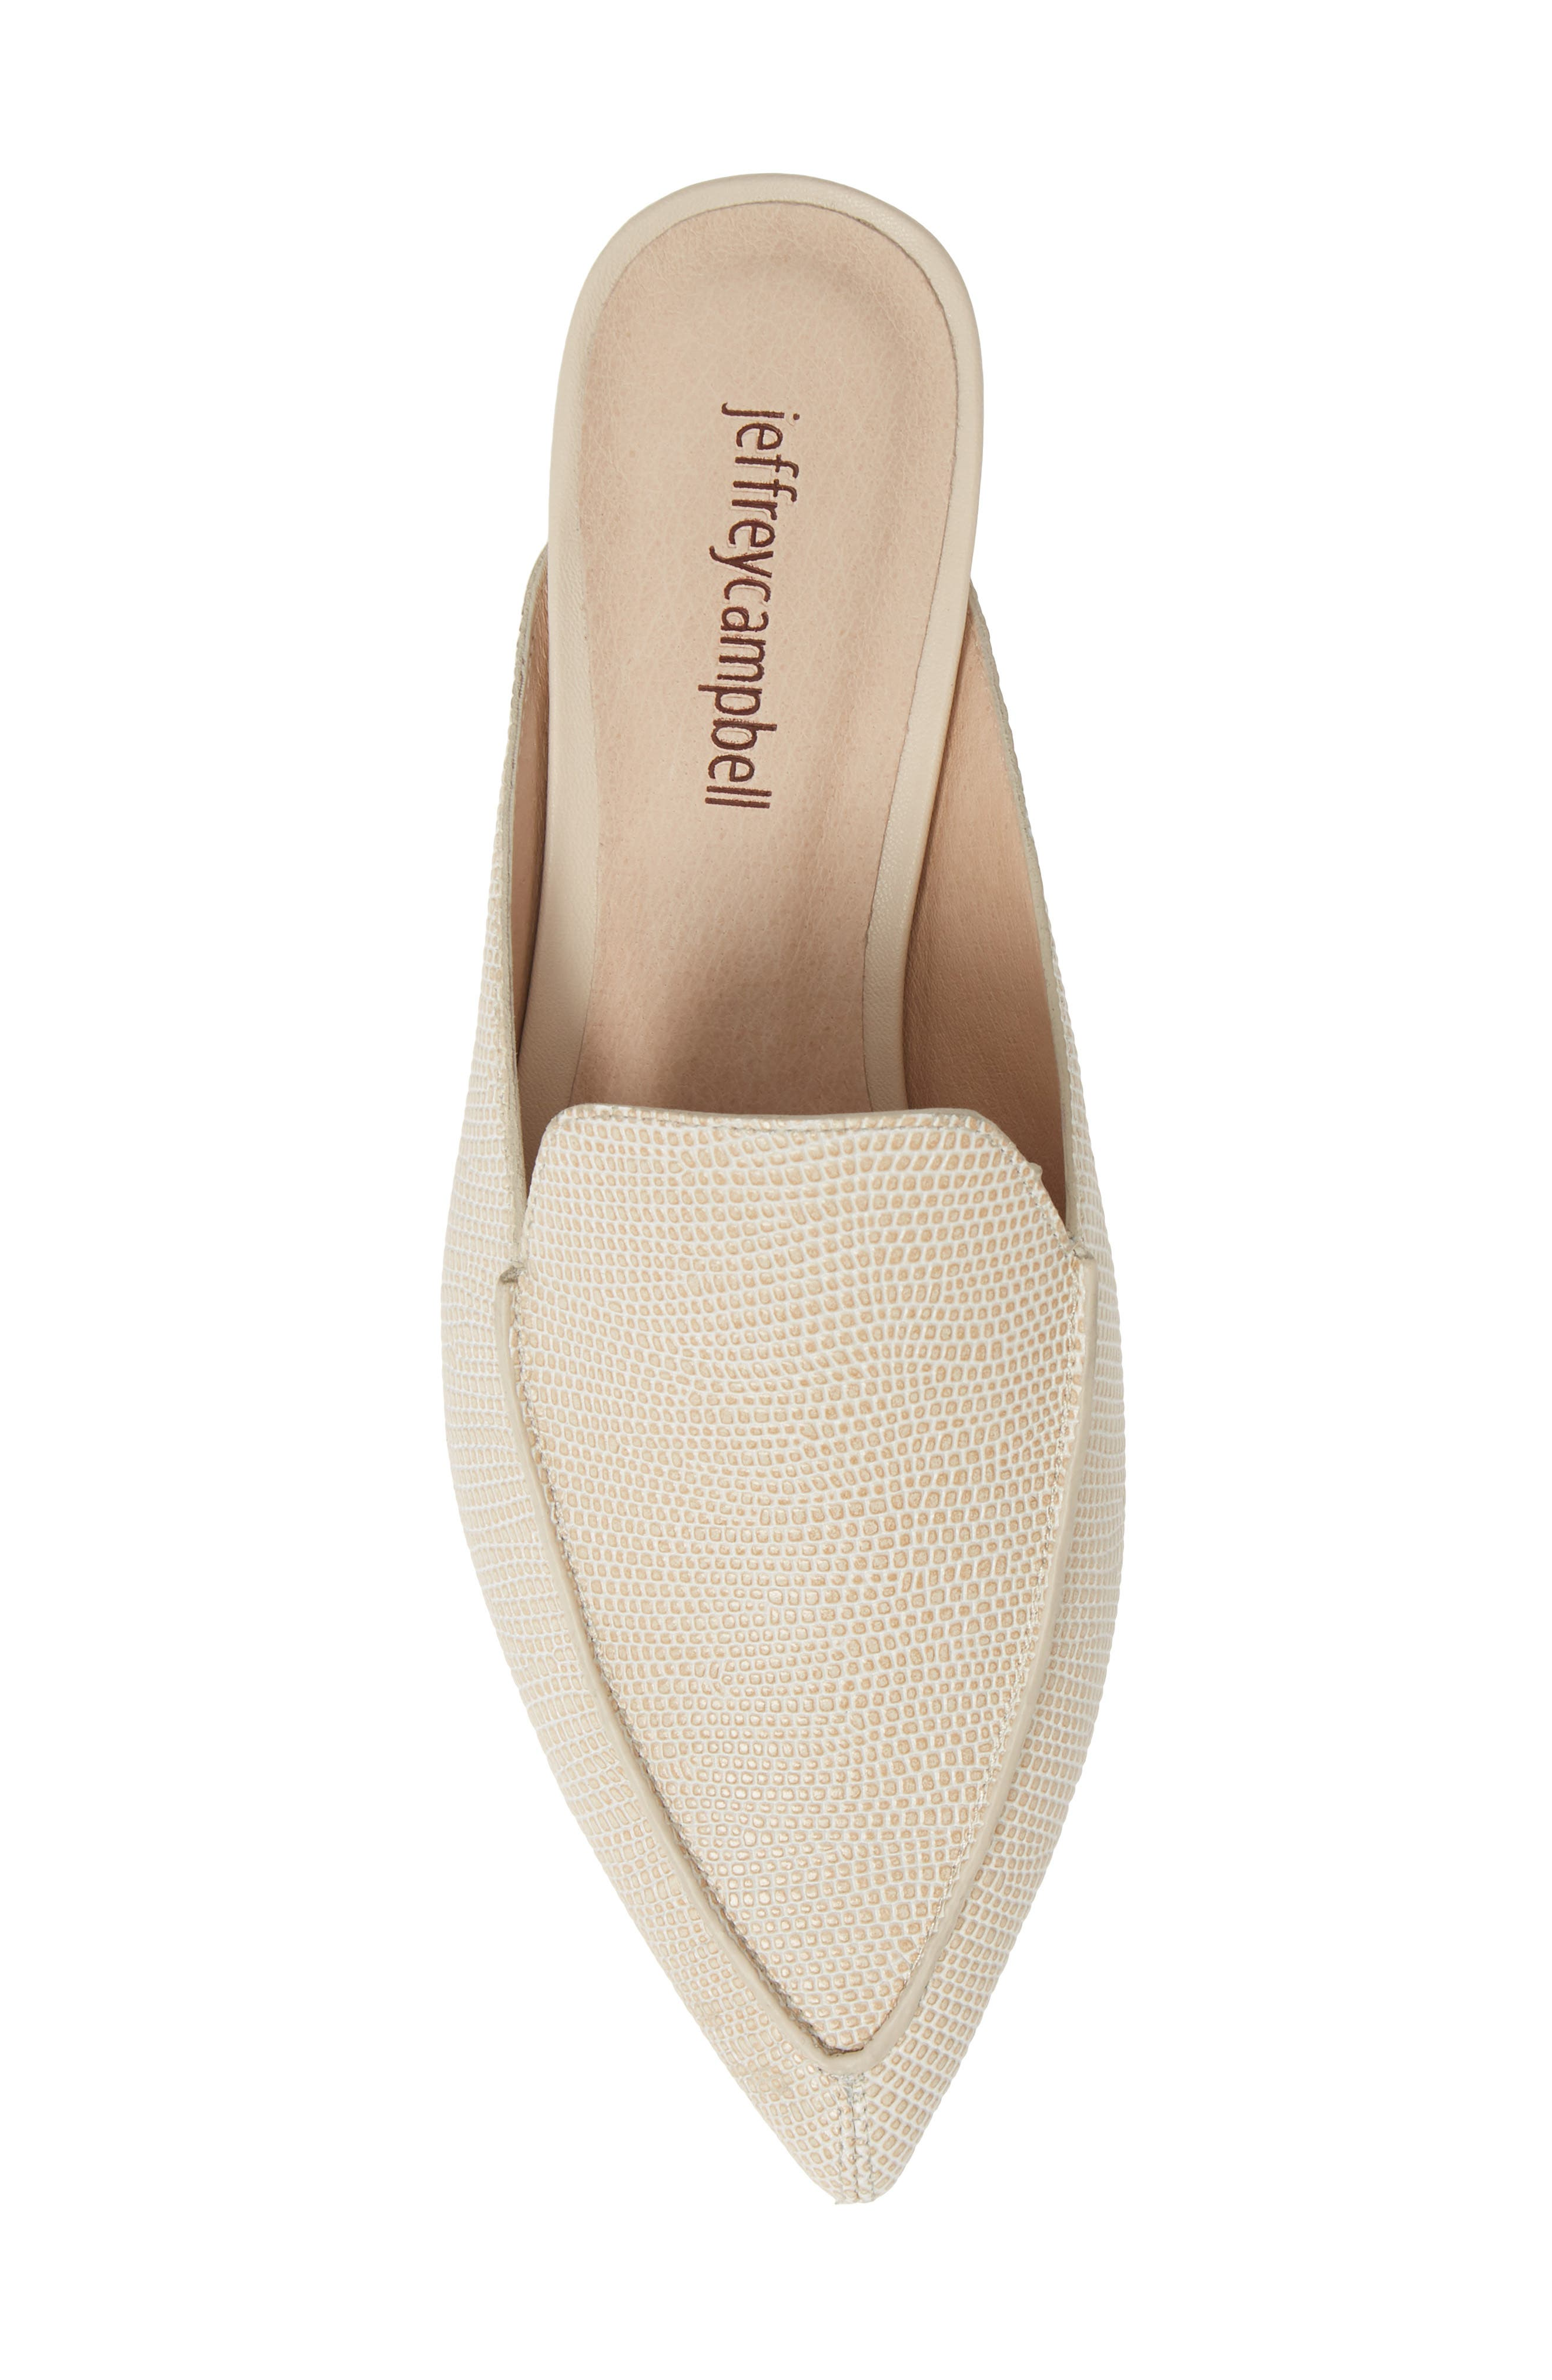 JEFFREY CAMPBELL, Vionit Lizard Embossed Loafer Mule, Alternate thumbnail 5, color, BEIGE LIZARD PRINT